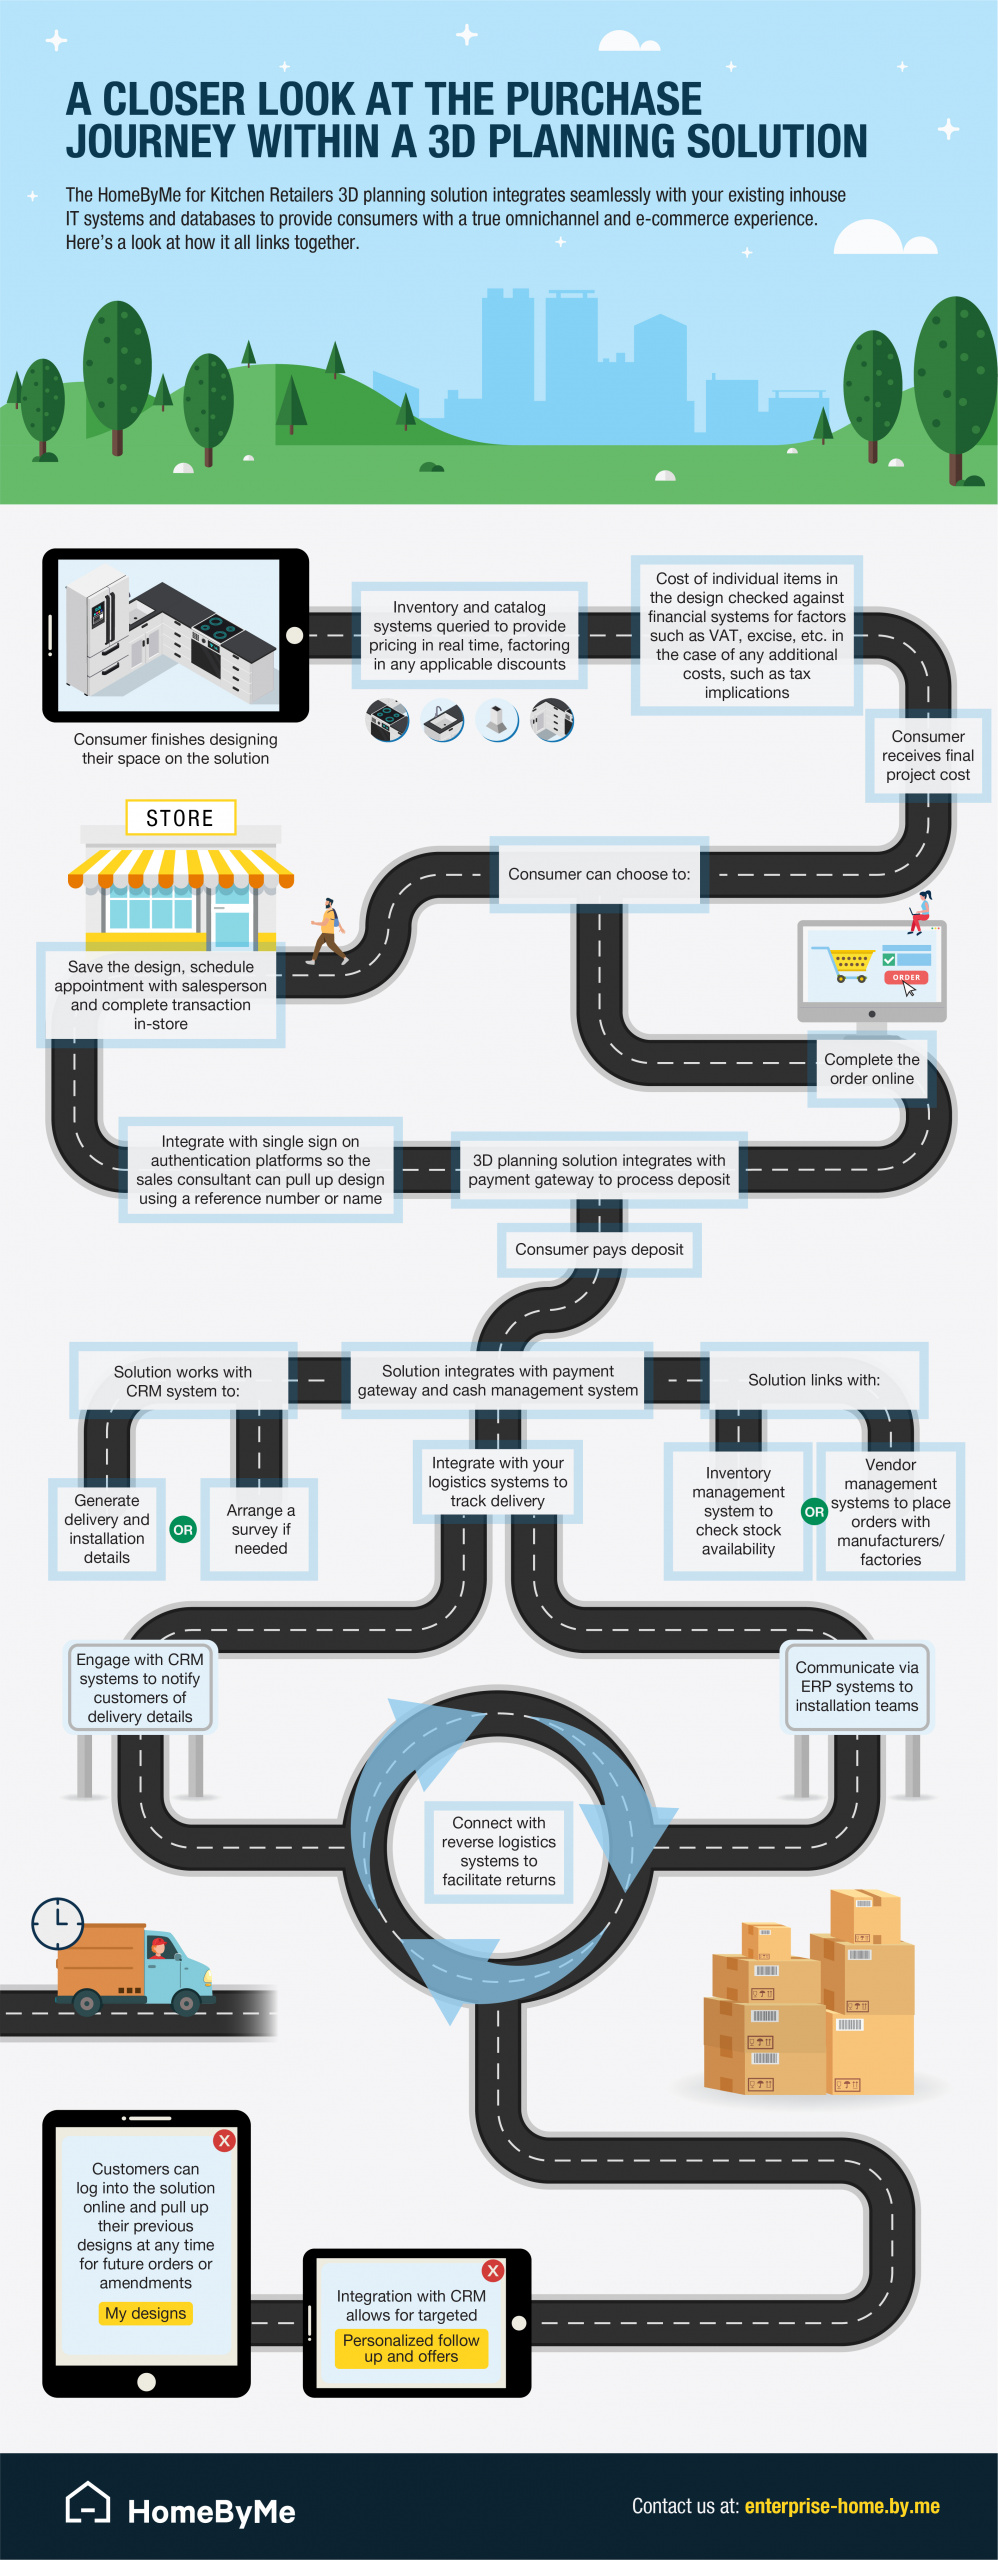 a closer look at the purchase journey within a 3D planning solution